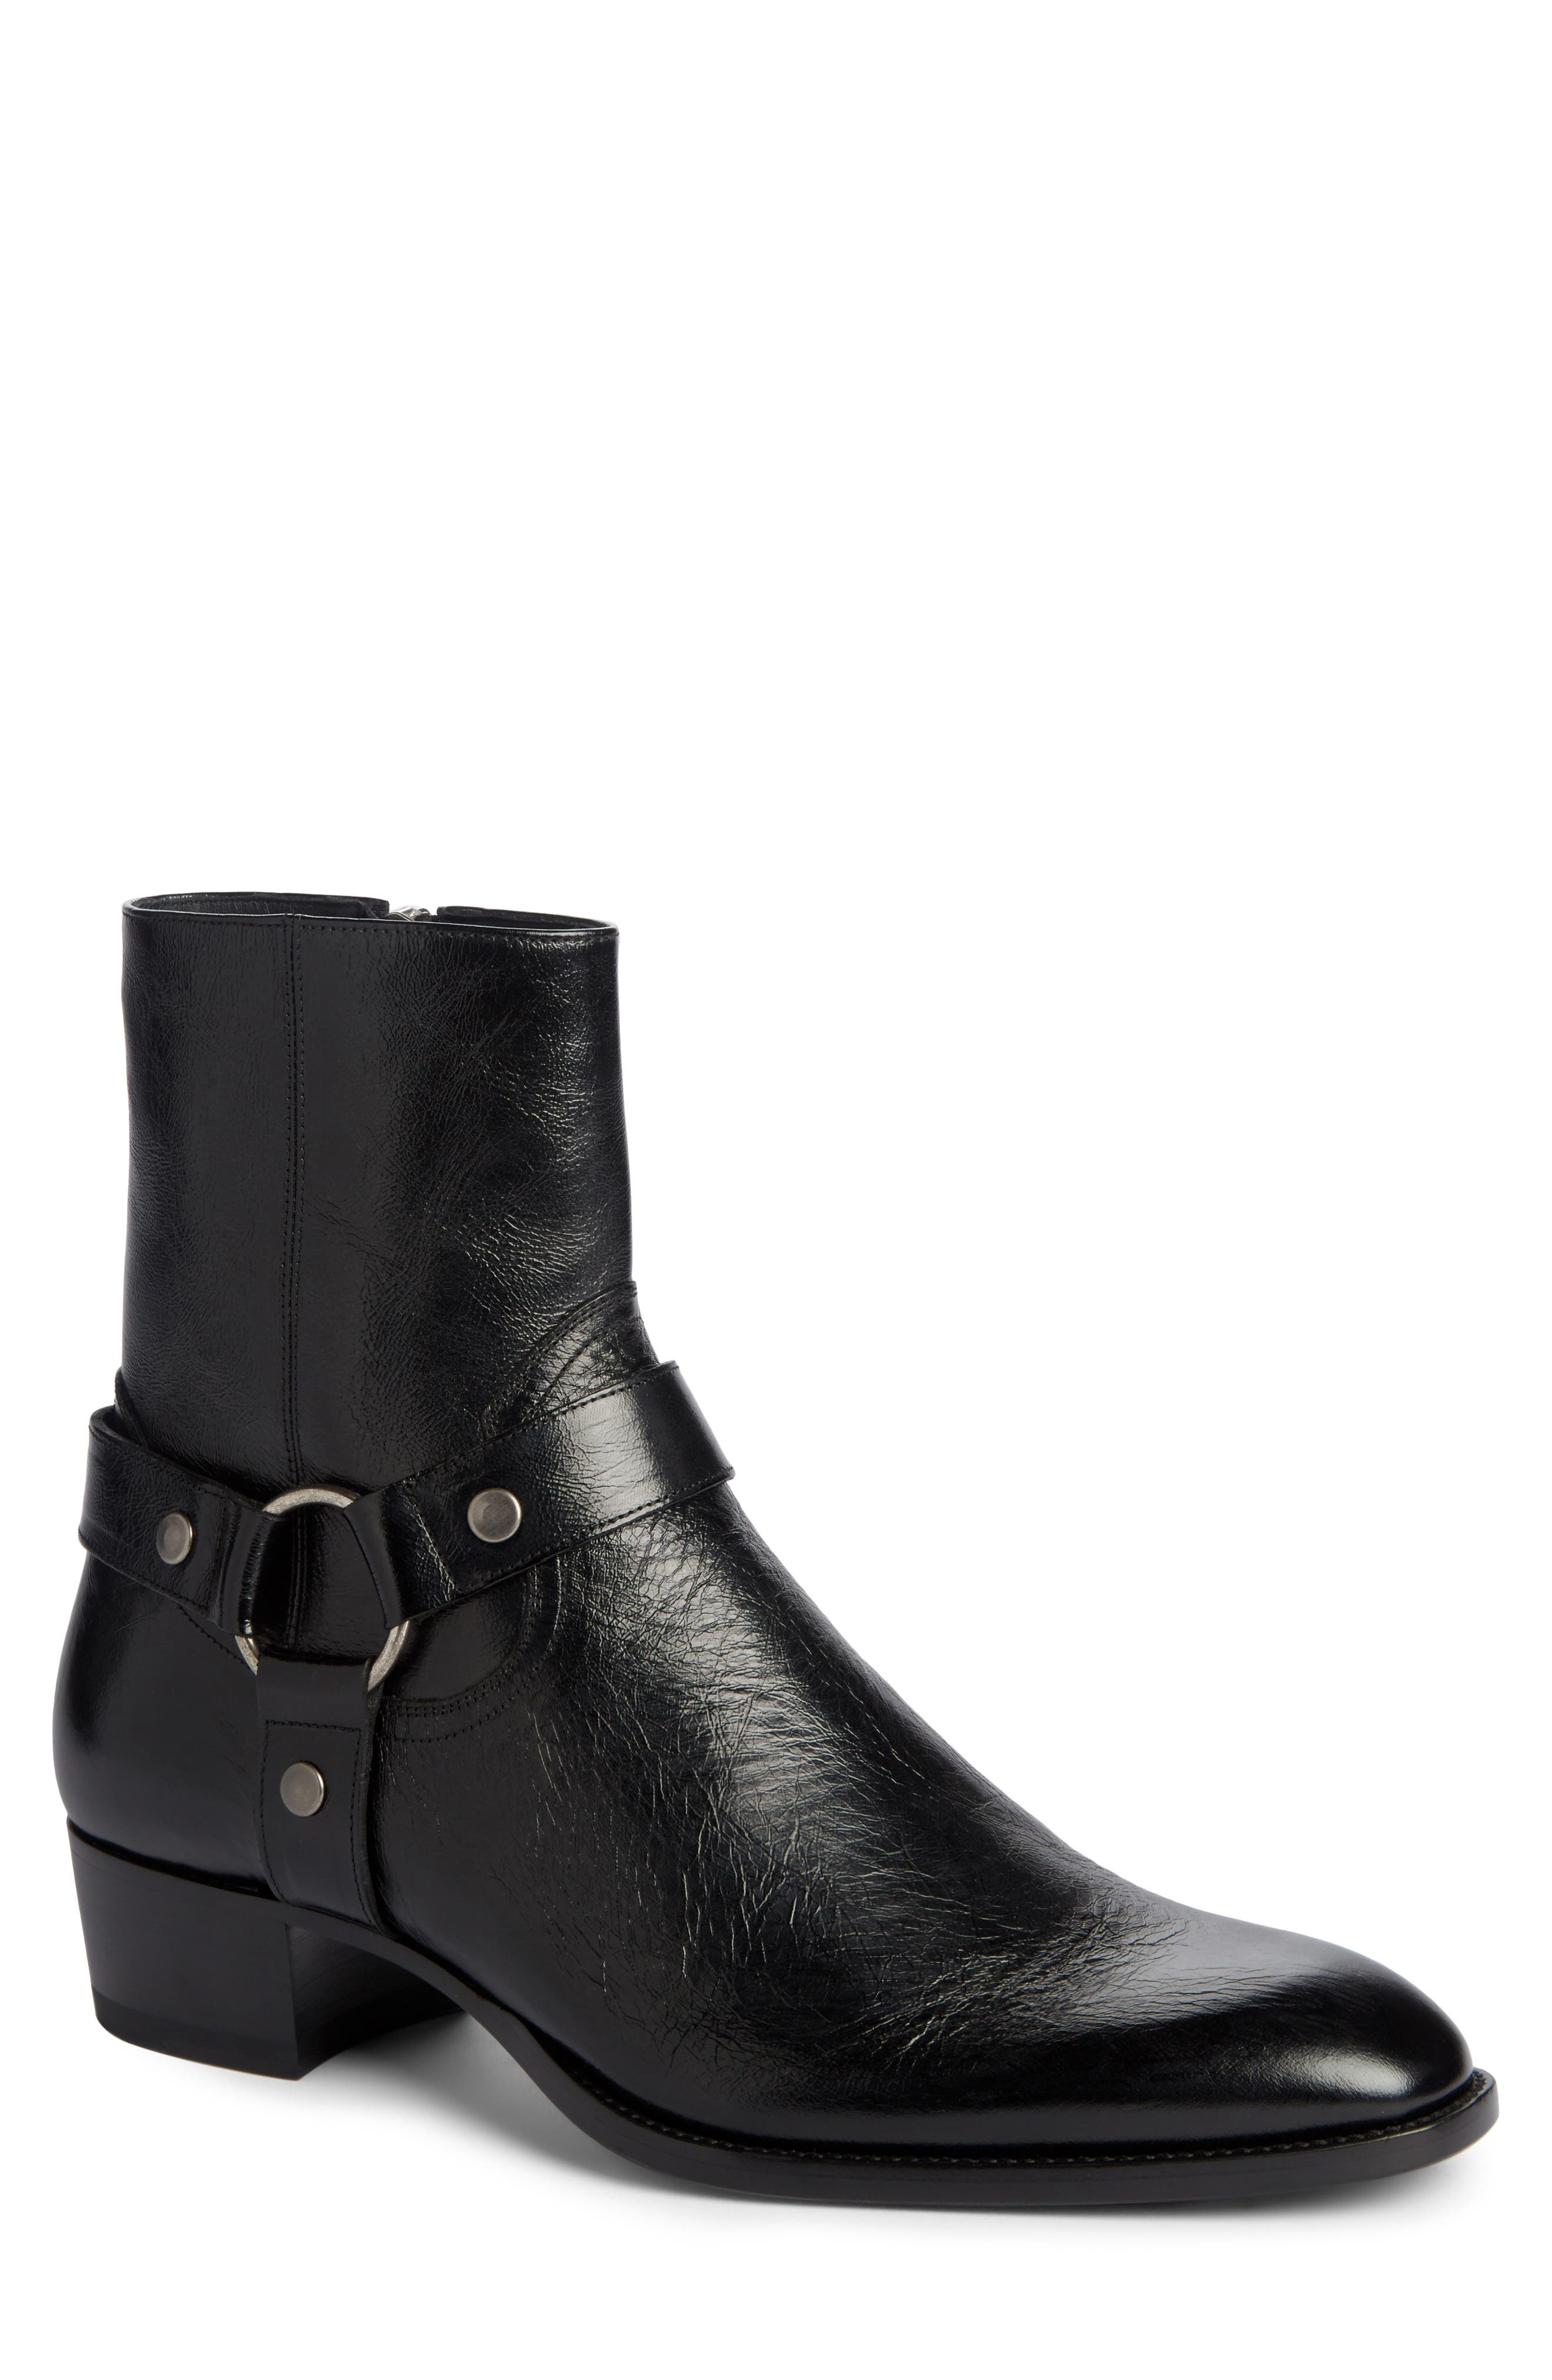 Wyatt Harness Boot,                             Main thumbnail 1, color,                             Black Leather